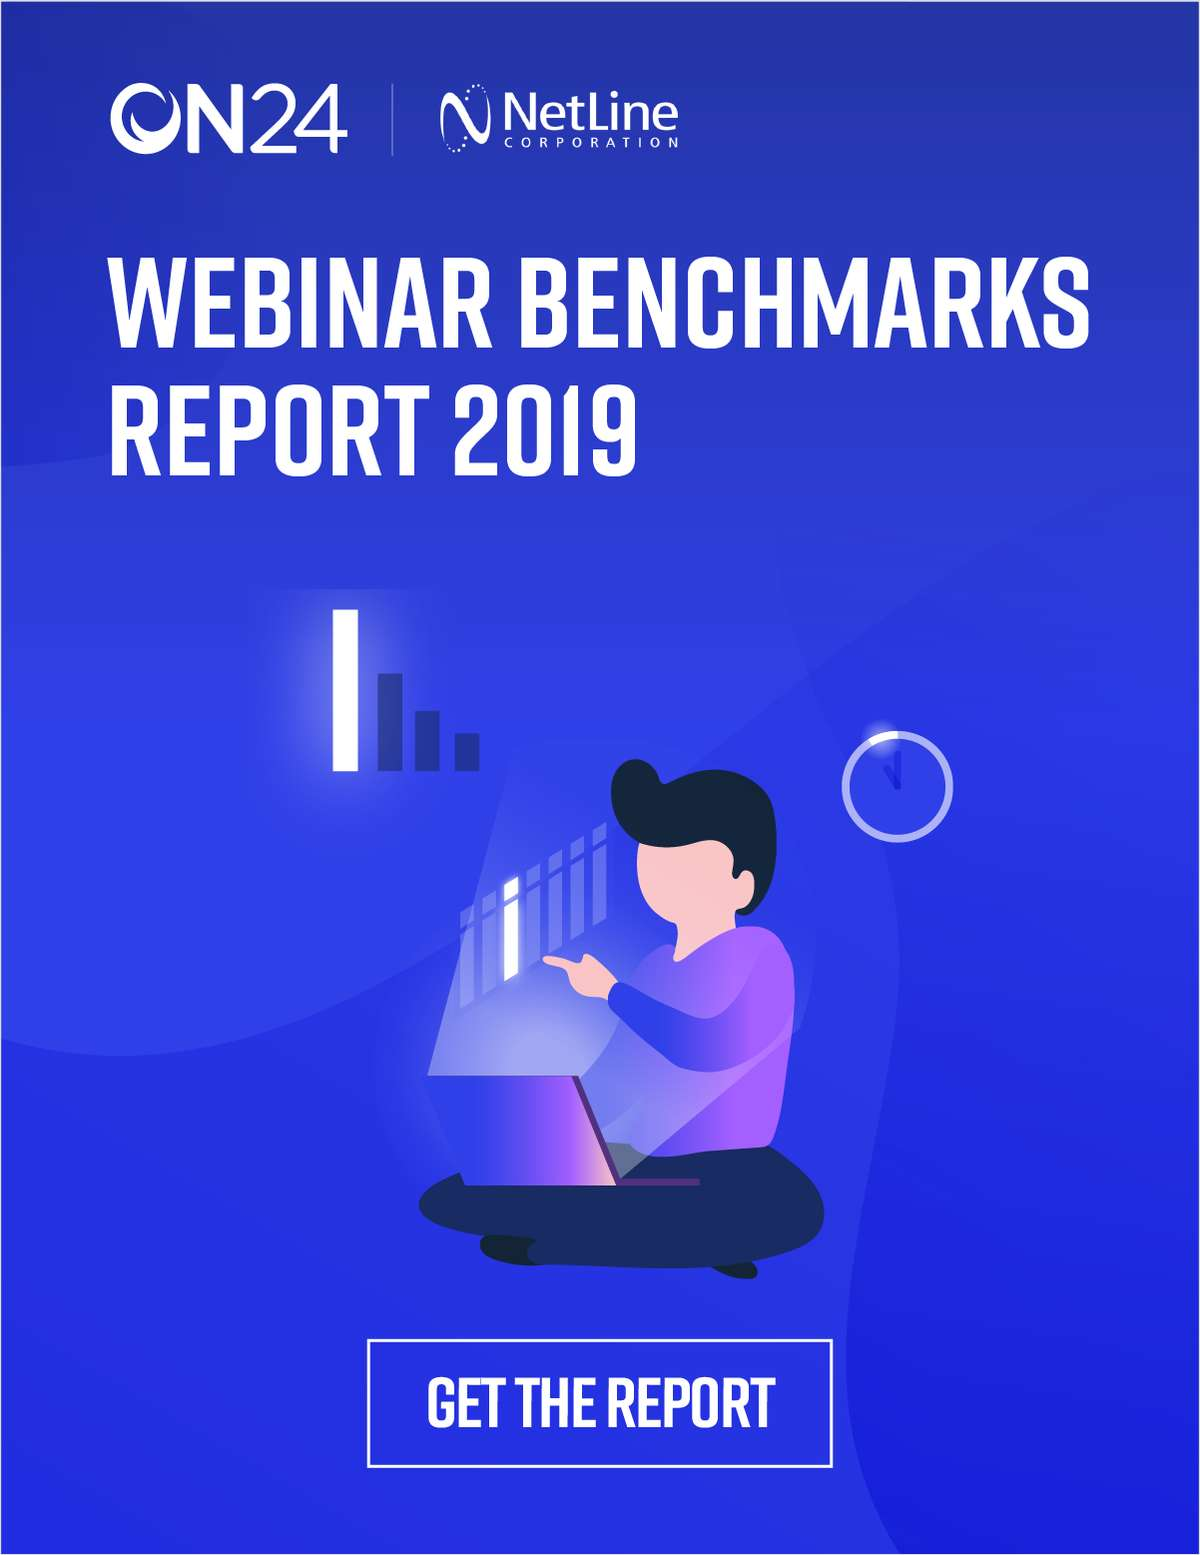 ON24 Webinar Benchmarks Report 2019